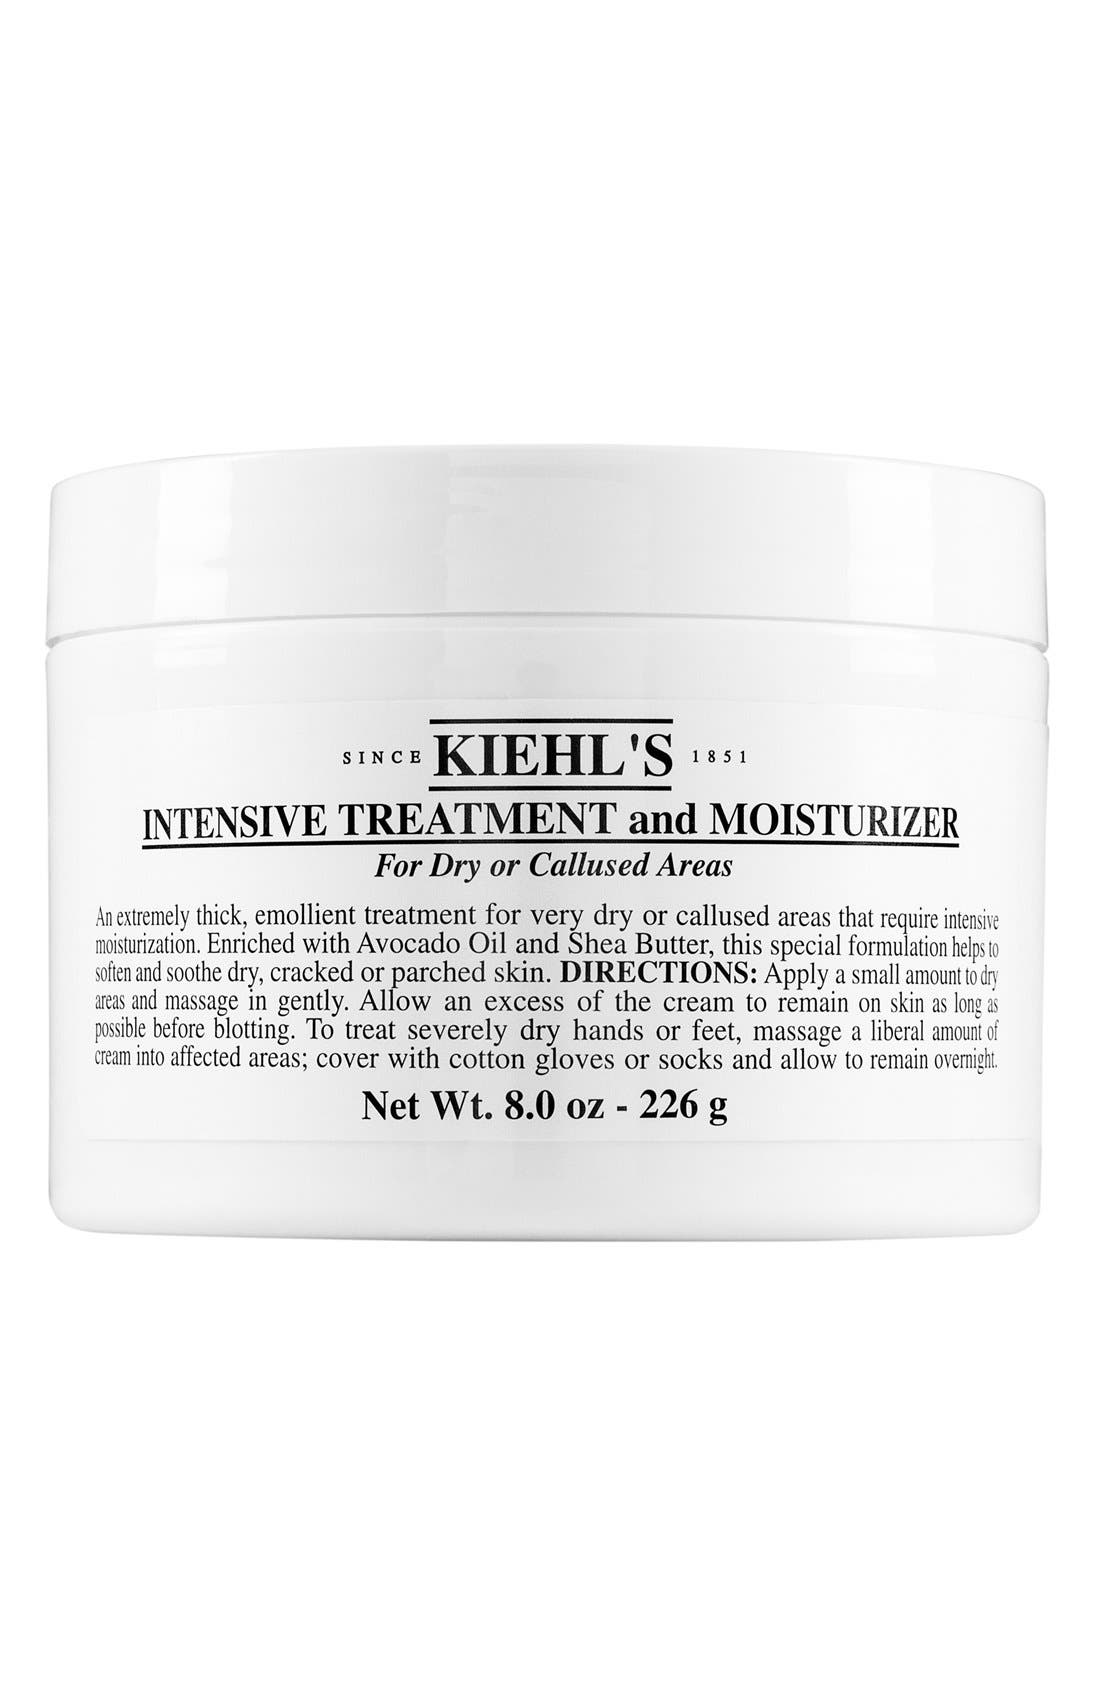 Kiehl's Since 1851 Intensive Treatment & Moisturizer for Dry or Callused Areas